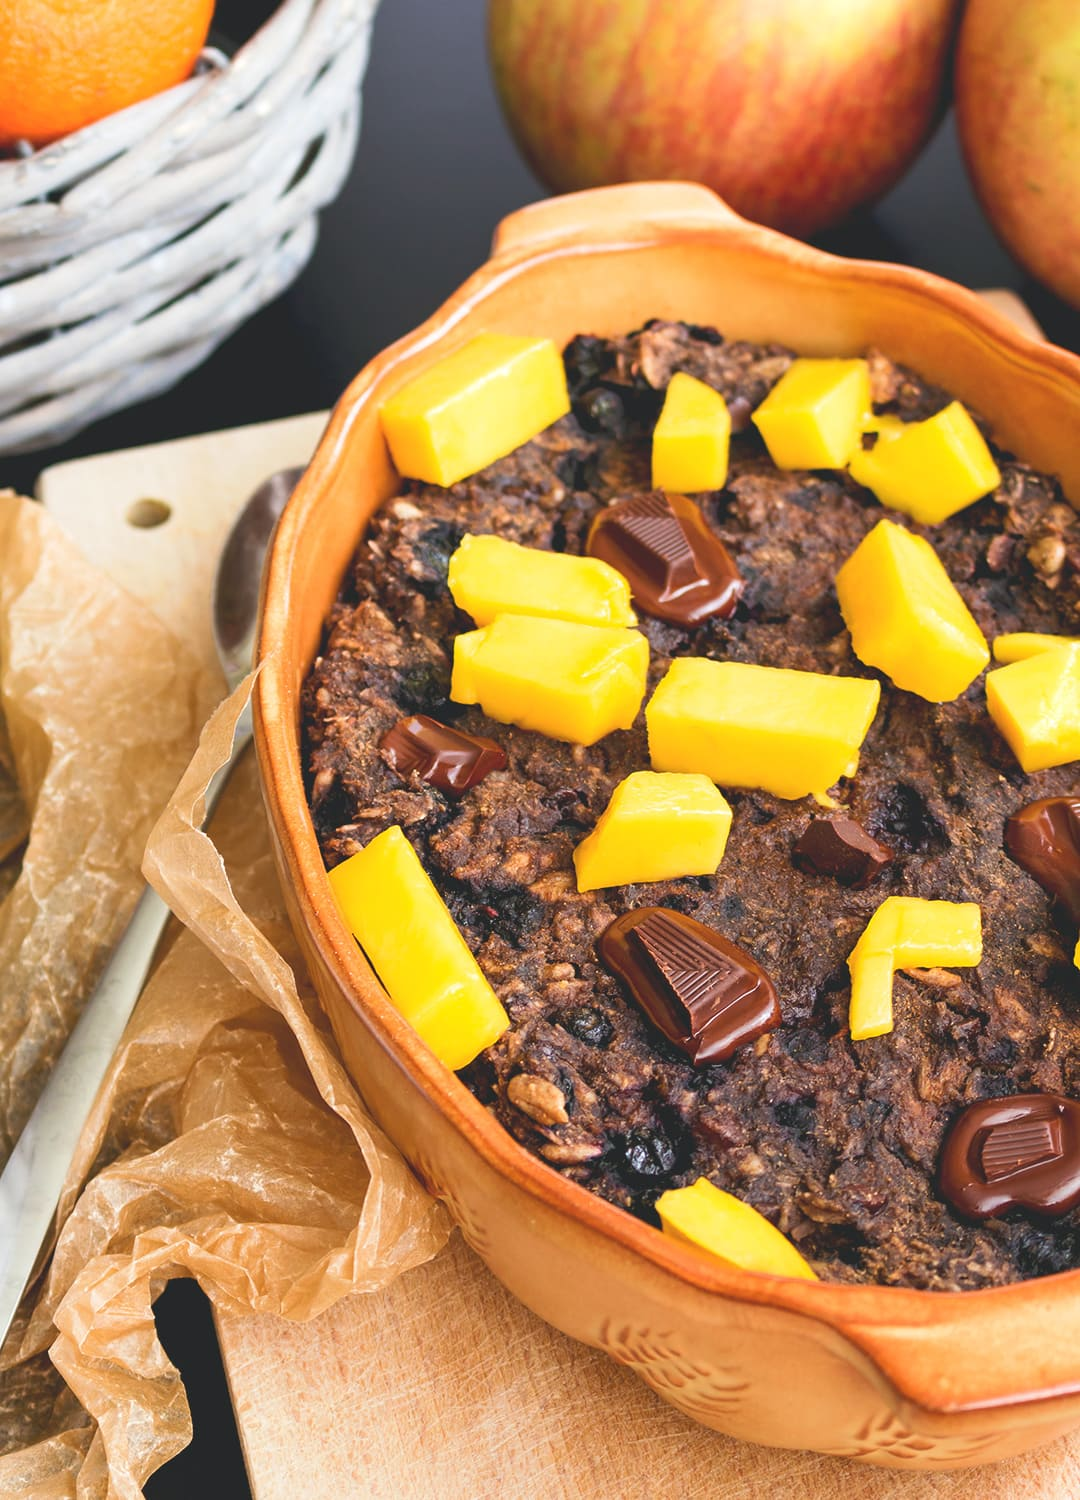 Blueberry Baked Oatmeal - delicious comforting breakfast recipe that happens to be good for you. I love baked oatmeal! Great topped with tropical fruits, chocolate, and nut butter. | thehealthfulideas.com